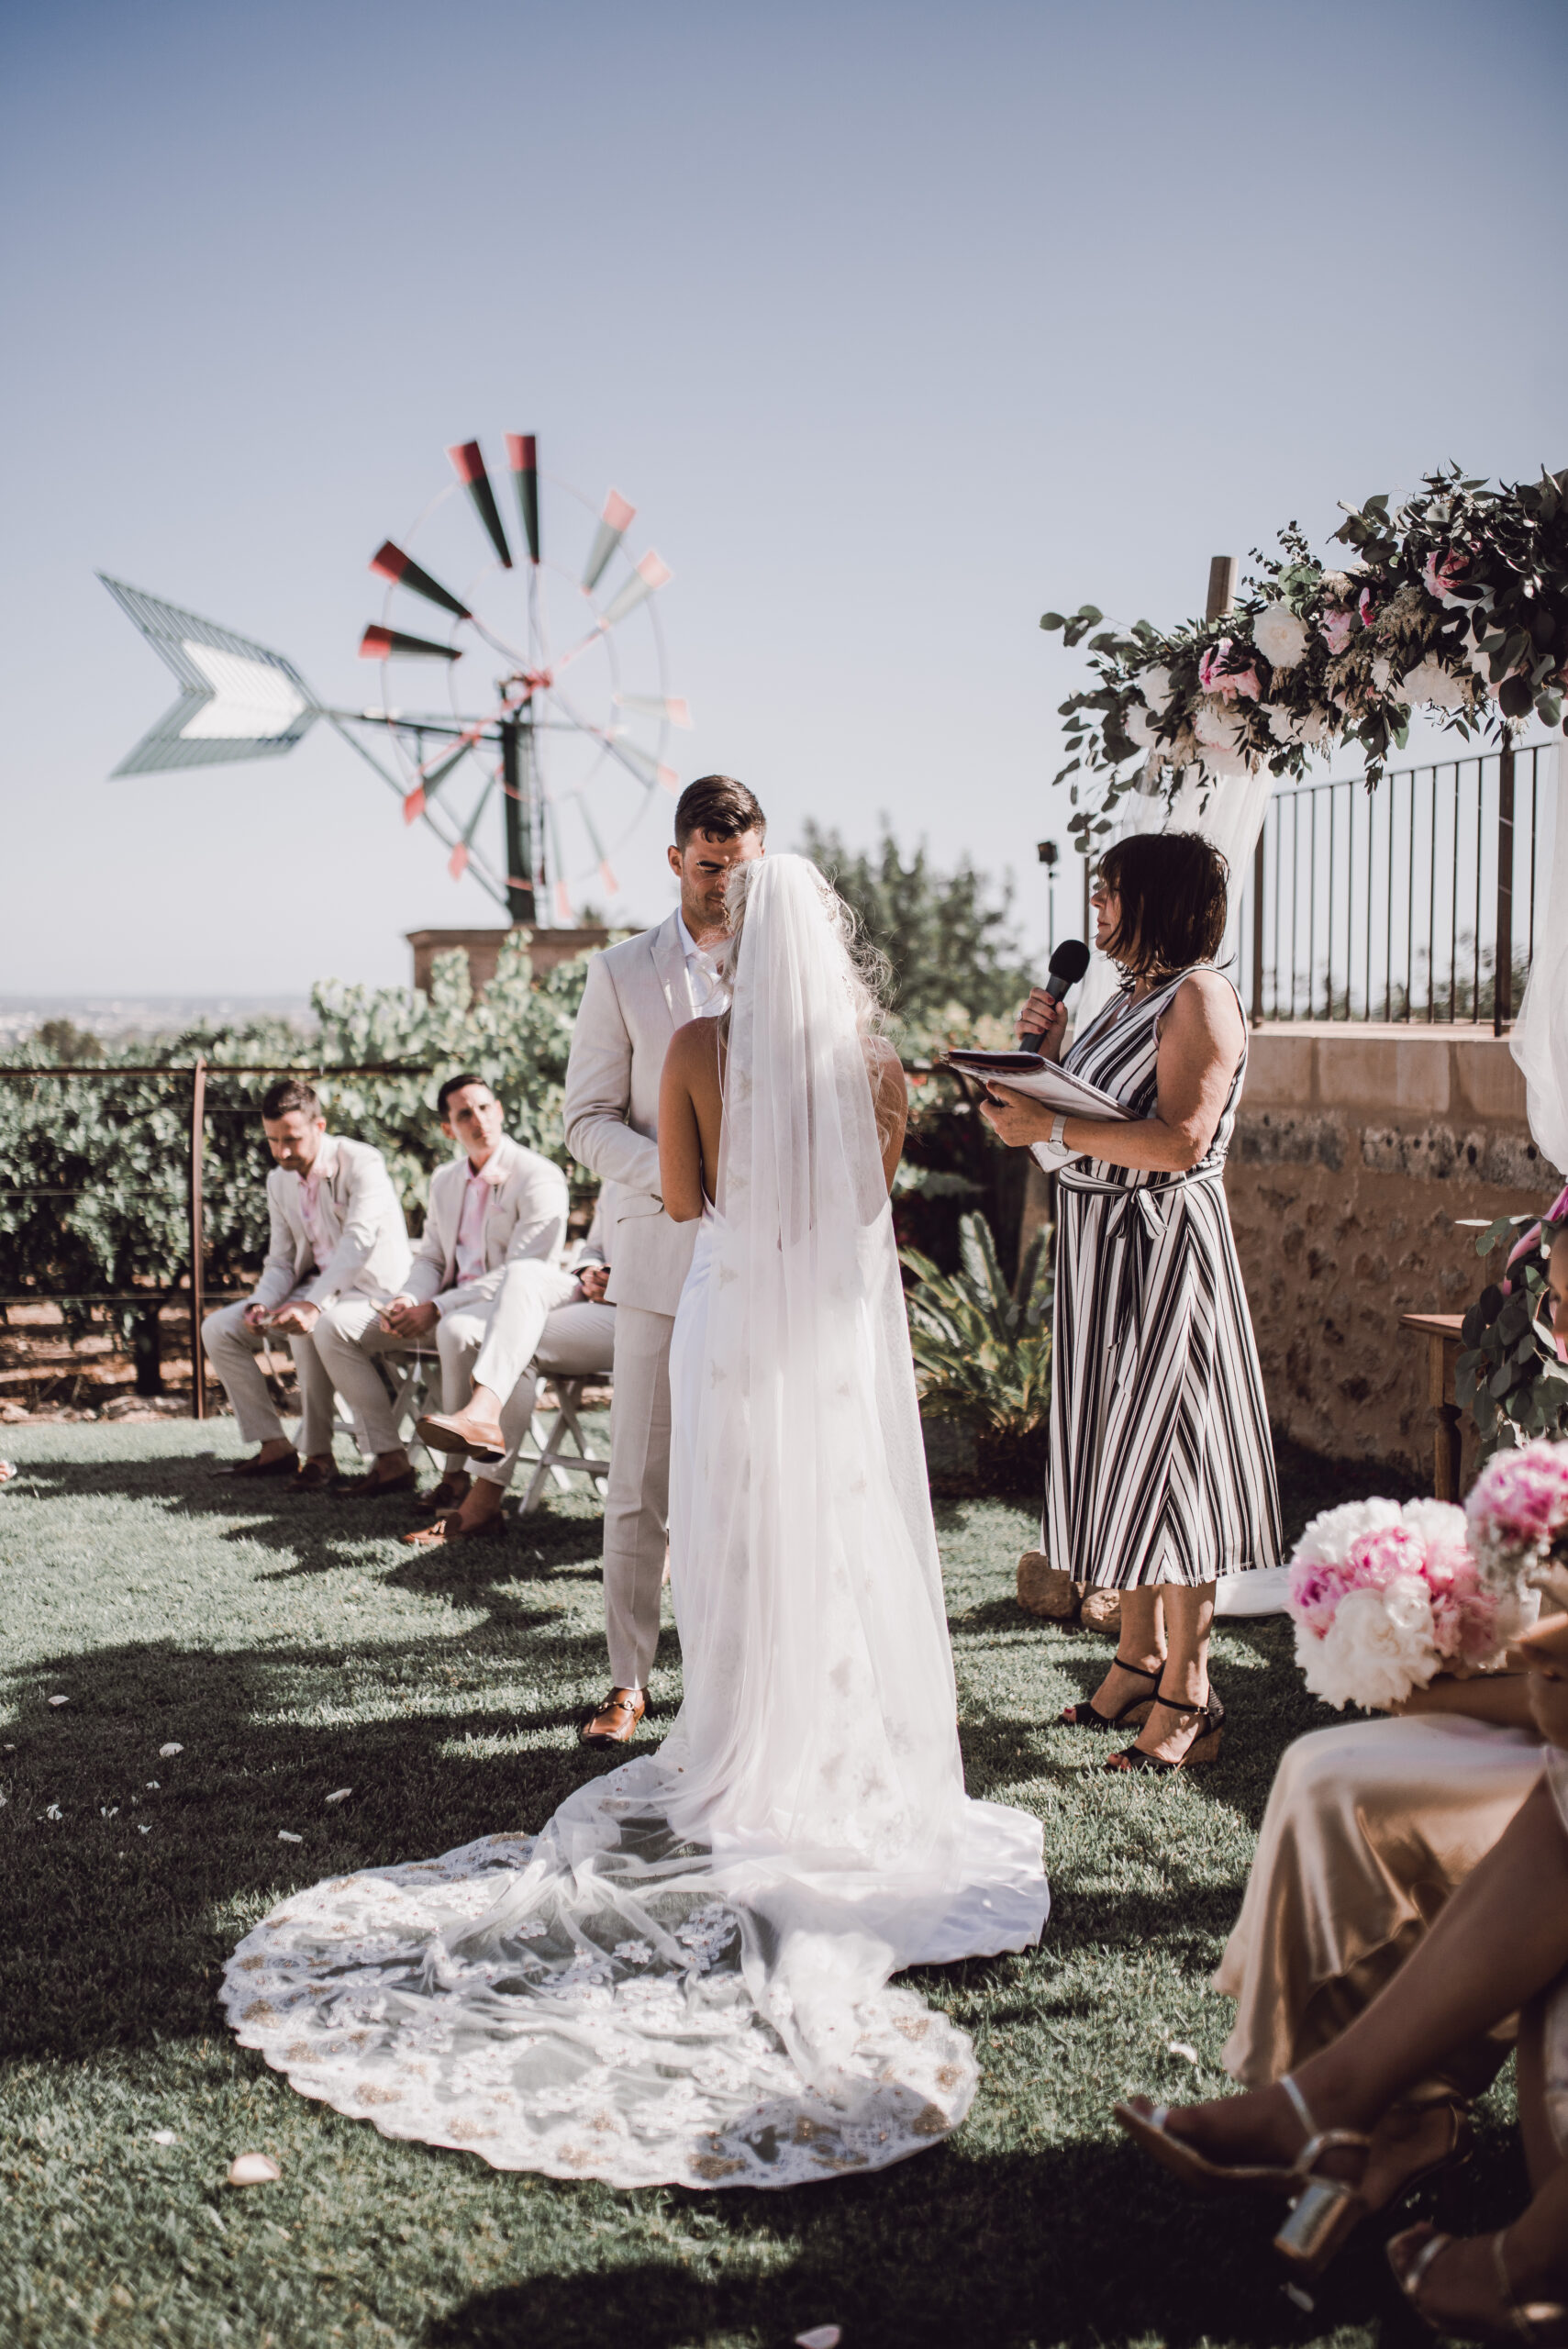 The wedding ceremony in the grounds of the Finca - Rebecca Jackson Photography